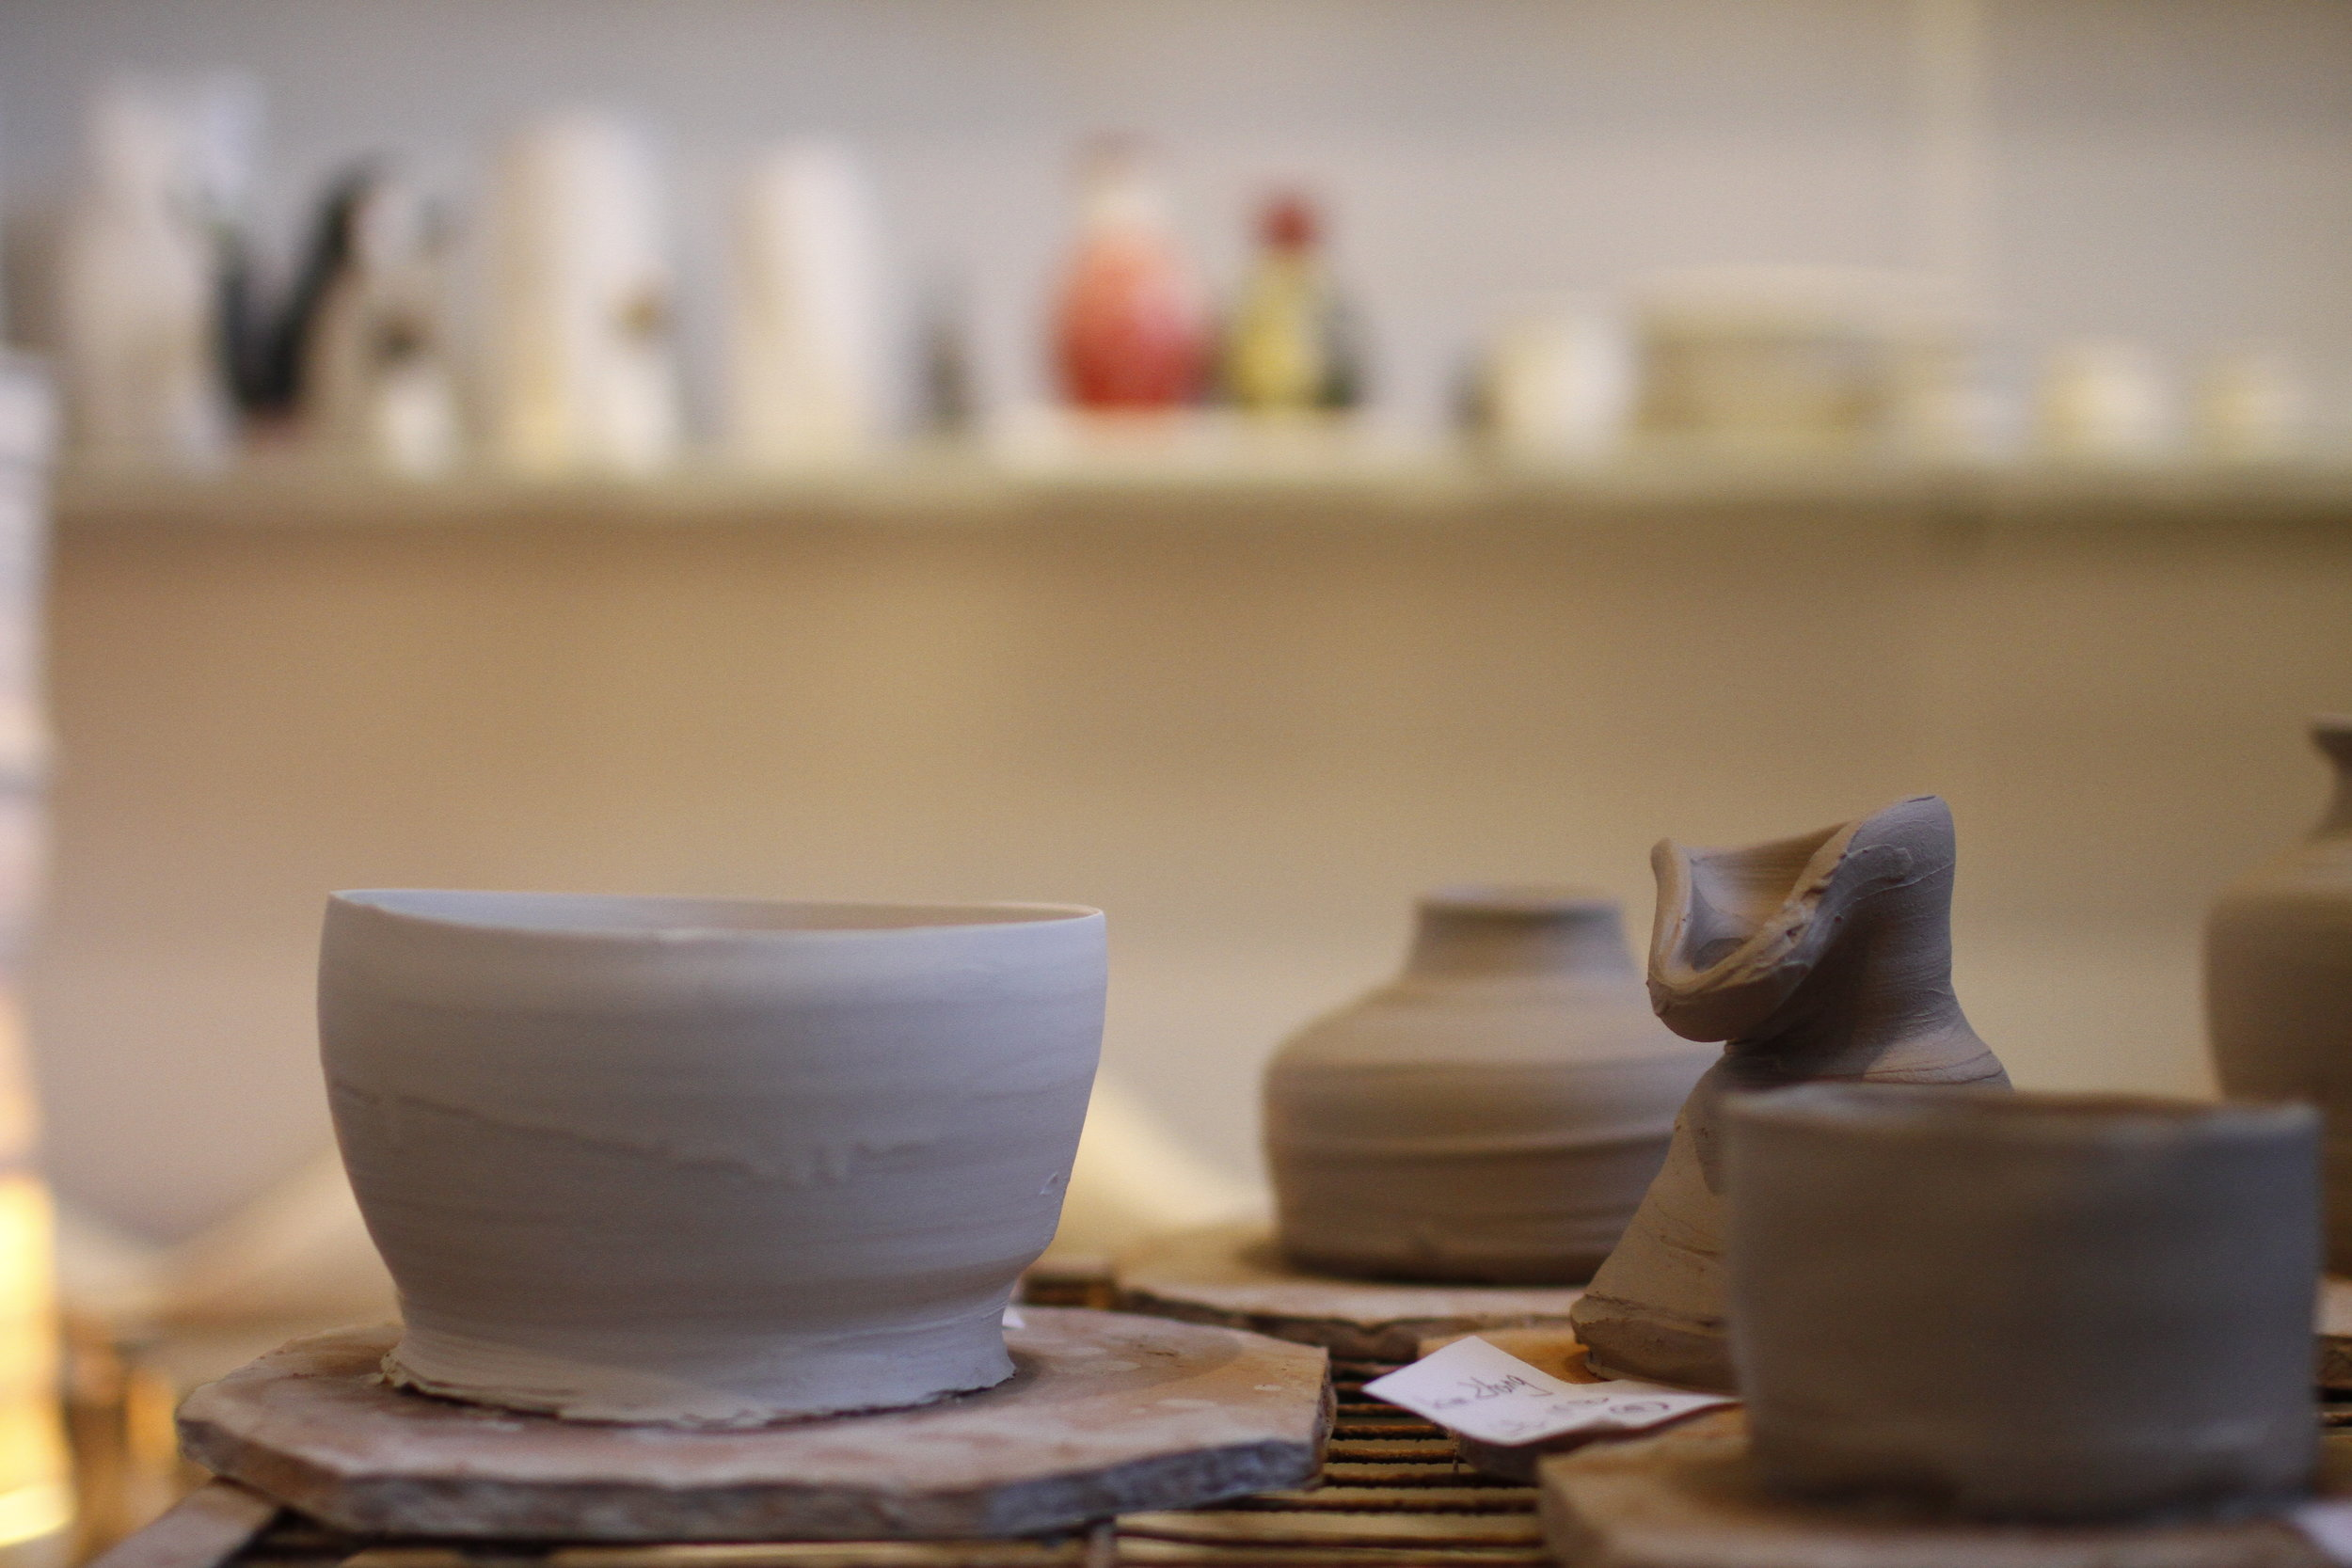 Student ceramic creations drying on the table.